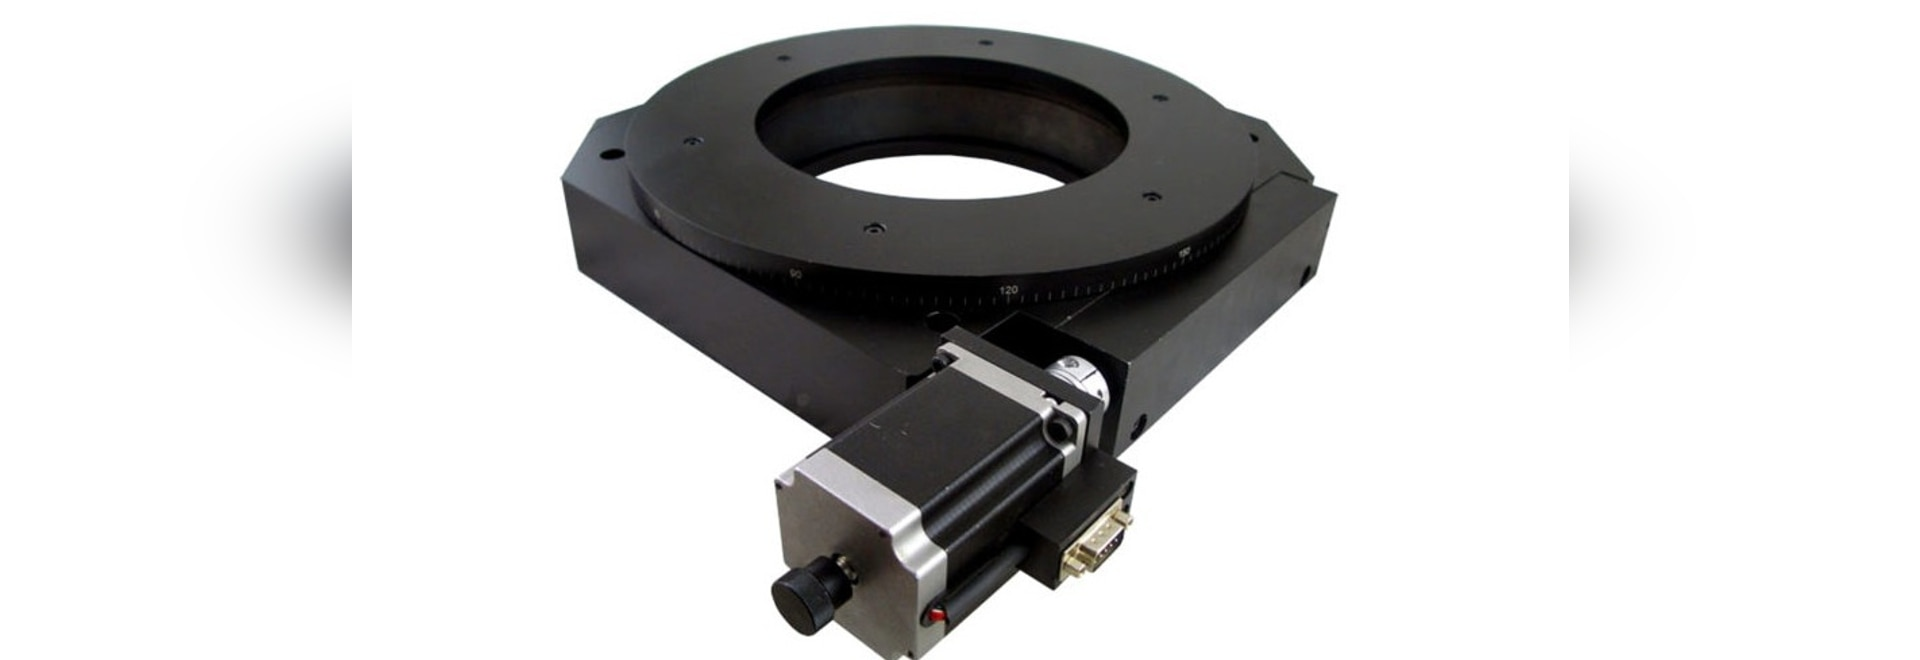 AY110-300 Motorized Rotary Stage.